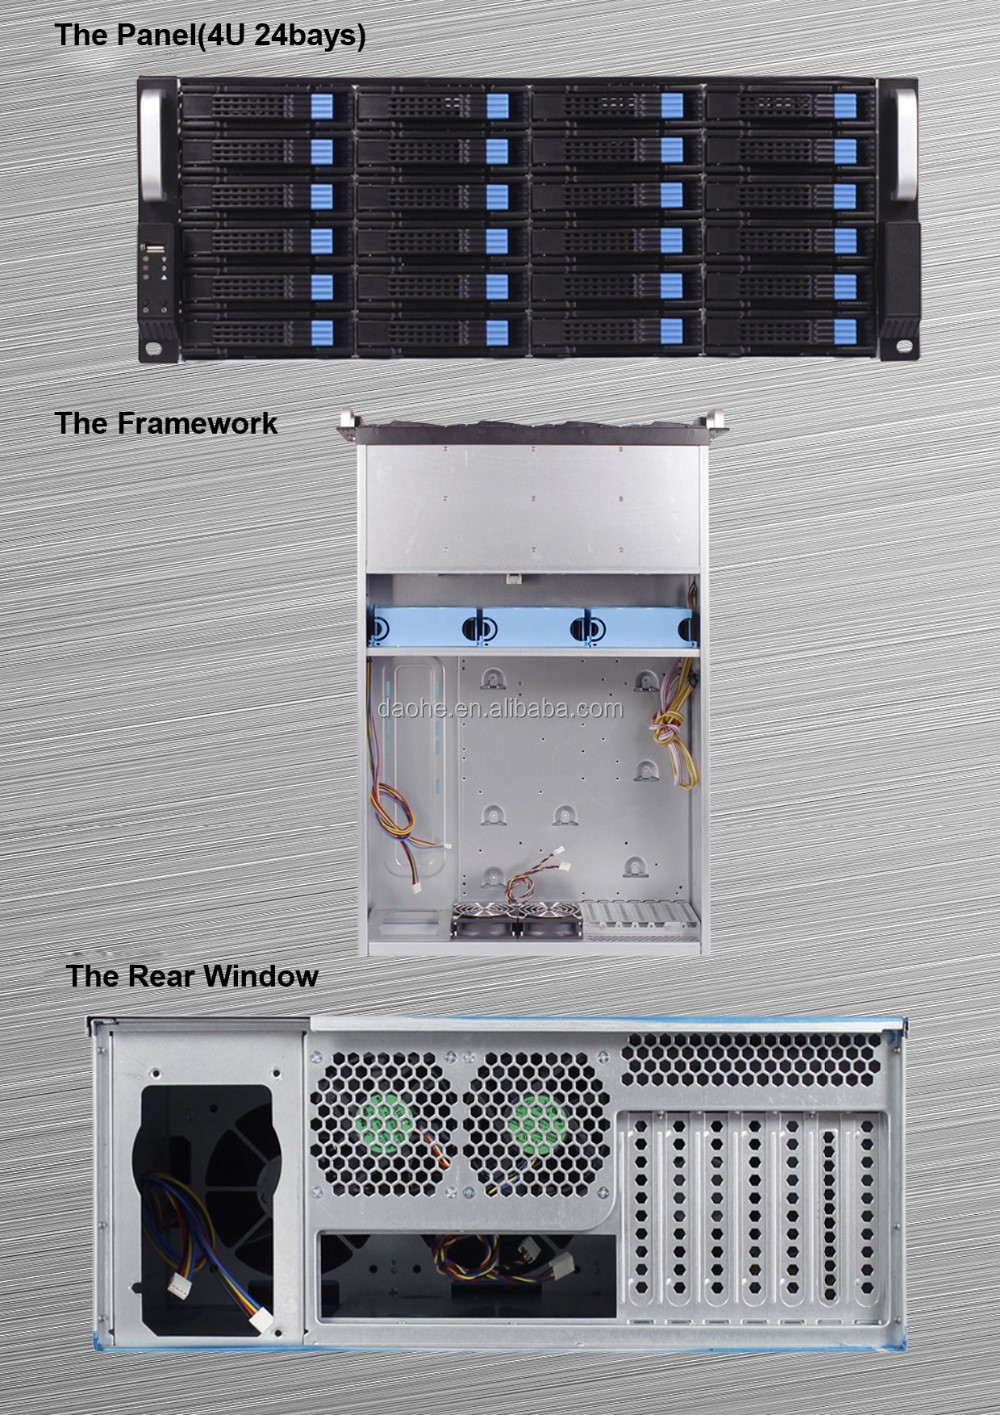 daohe 24 Bays HOT SWAP Storage Server Case with 3*12038 Fans rackmount chassis